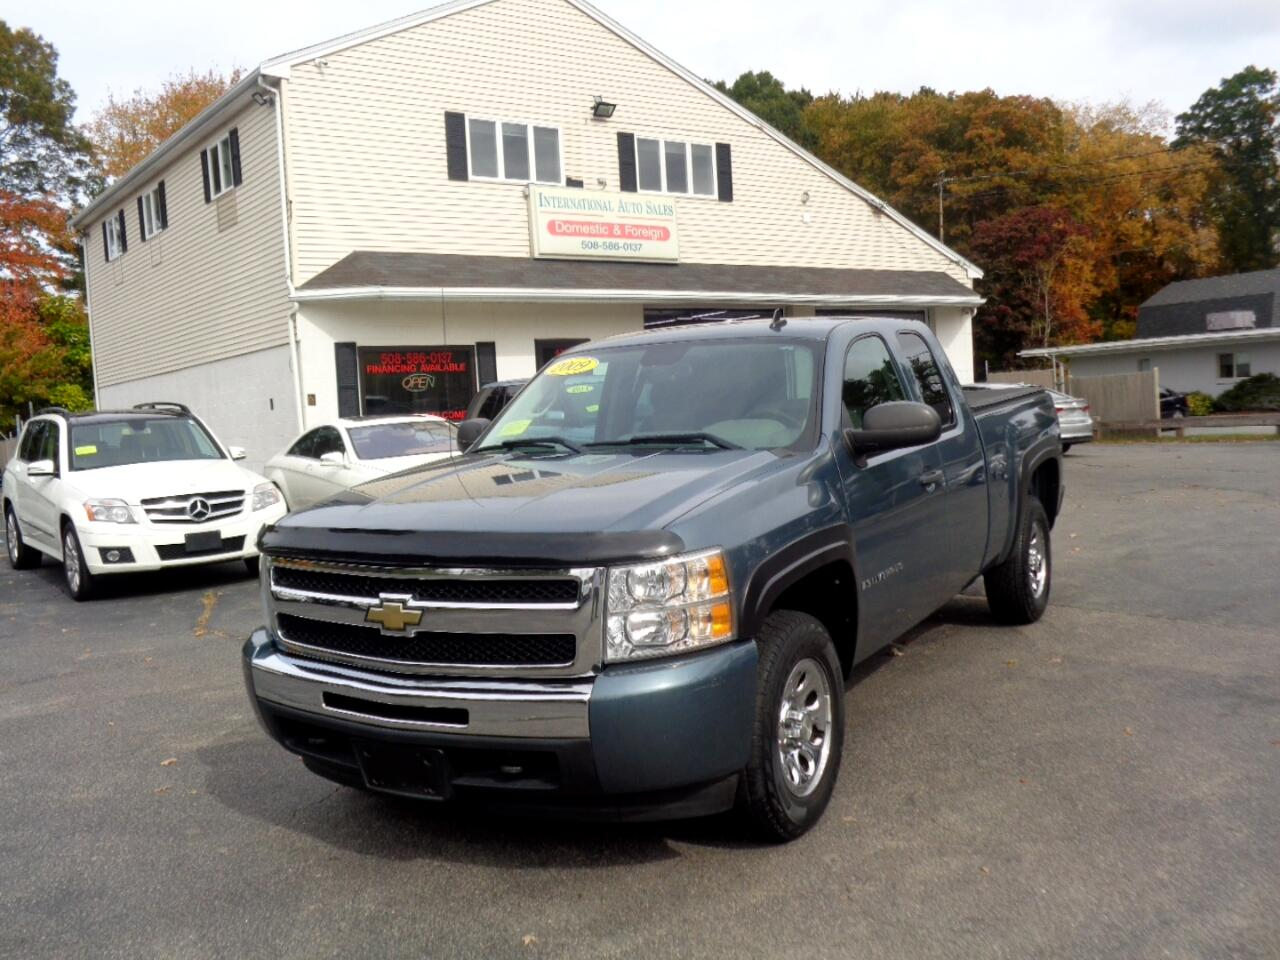 2009 Chevrolet Silverado 1500 Ext Cab 6,5ft Short Bad